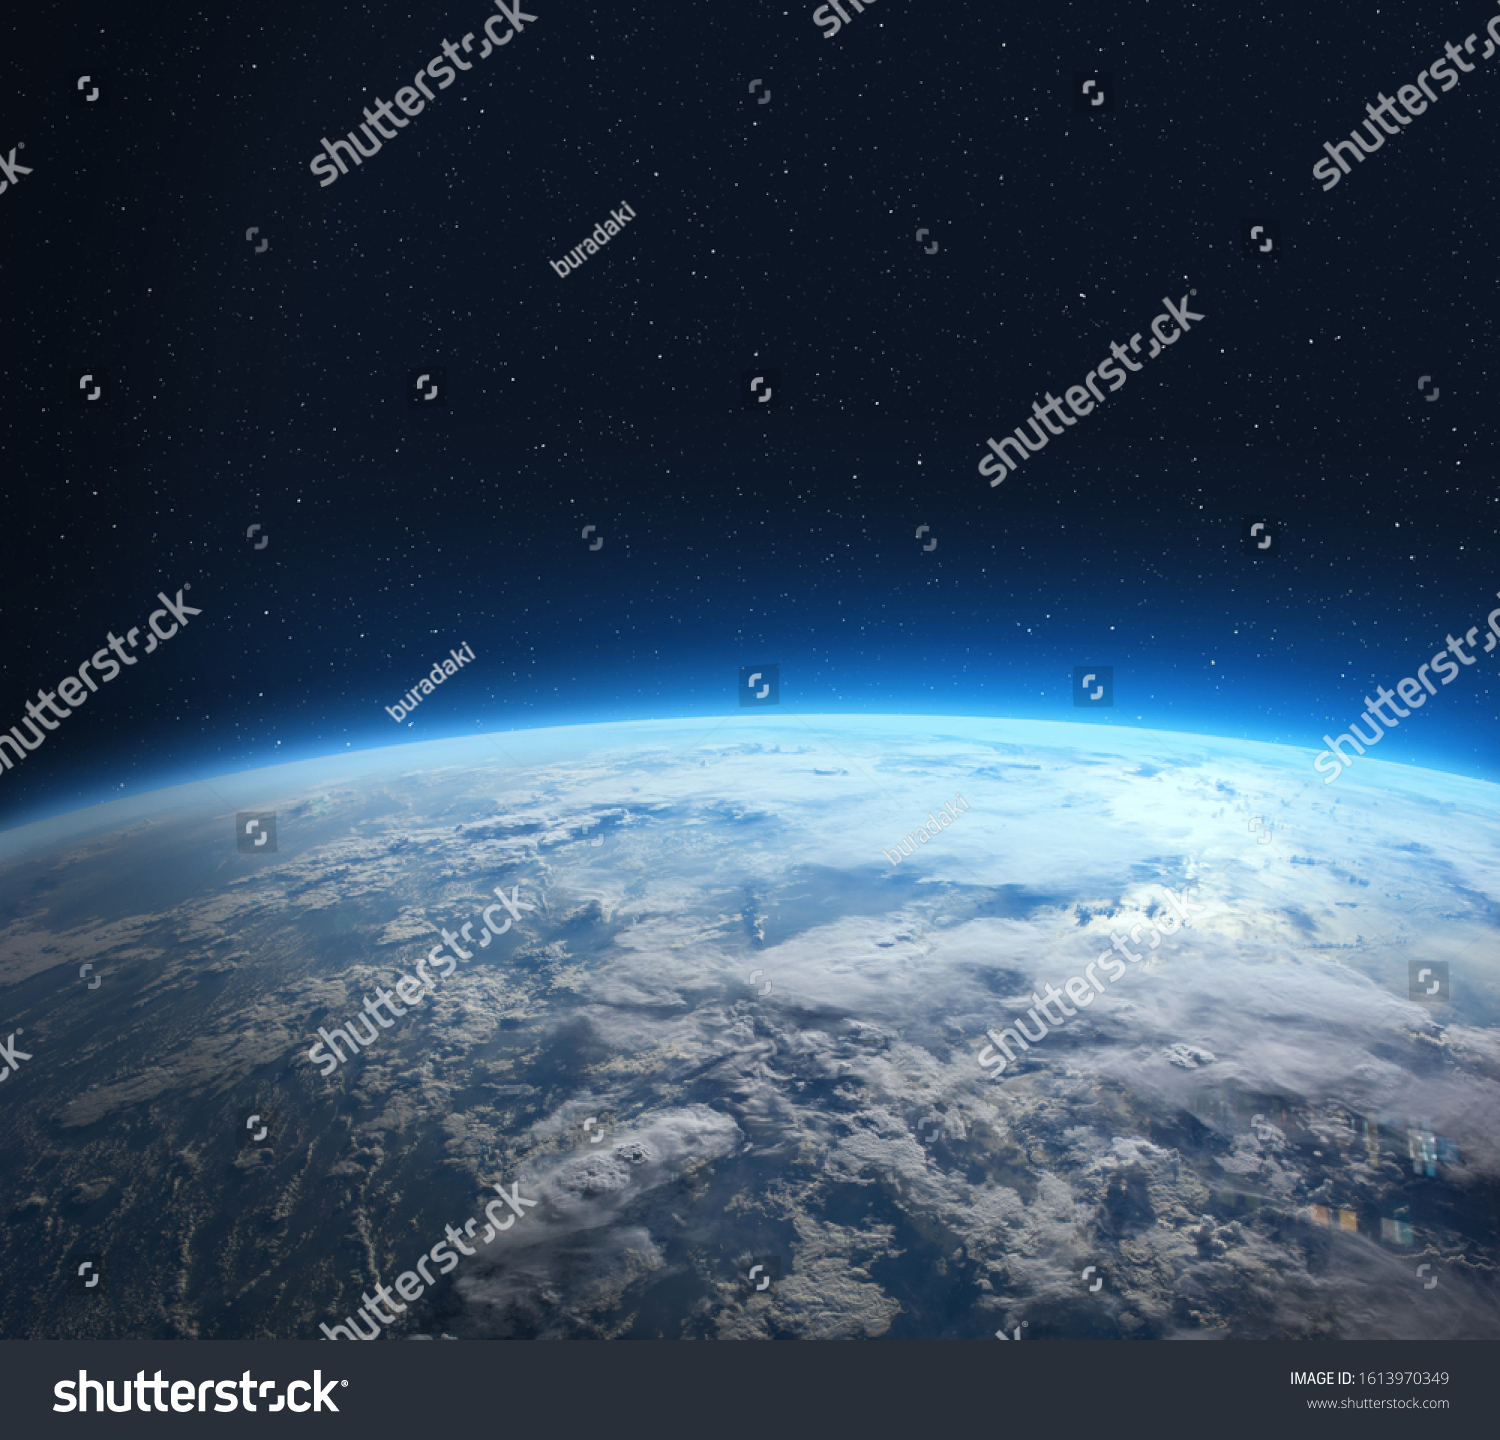 Blue Earth in the space. View of planet Earth from space. Elements of this image furnished by NASA. #1613970349